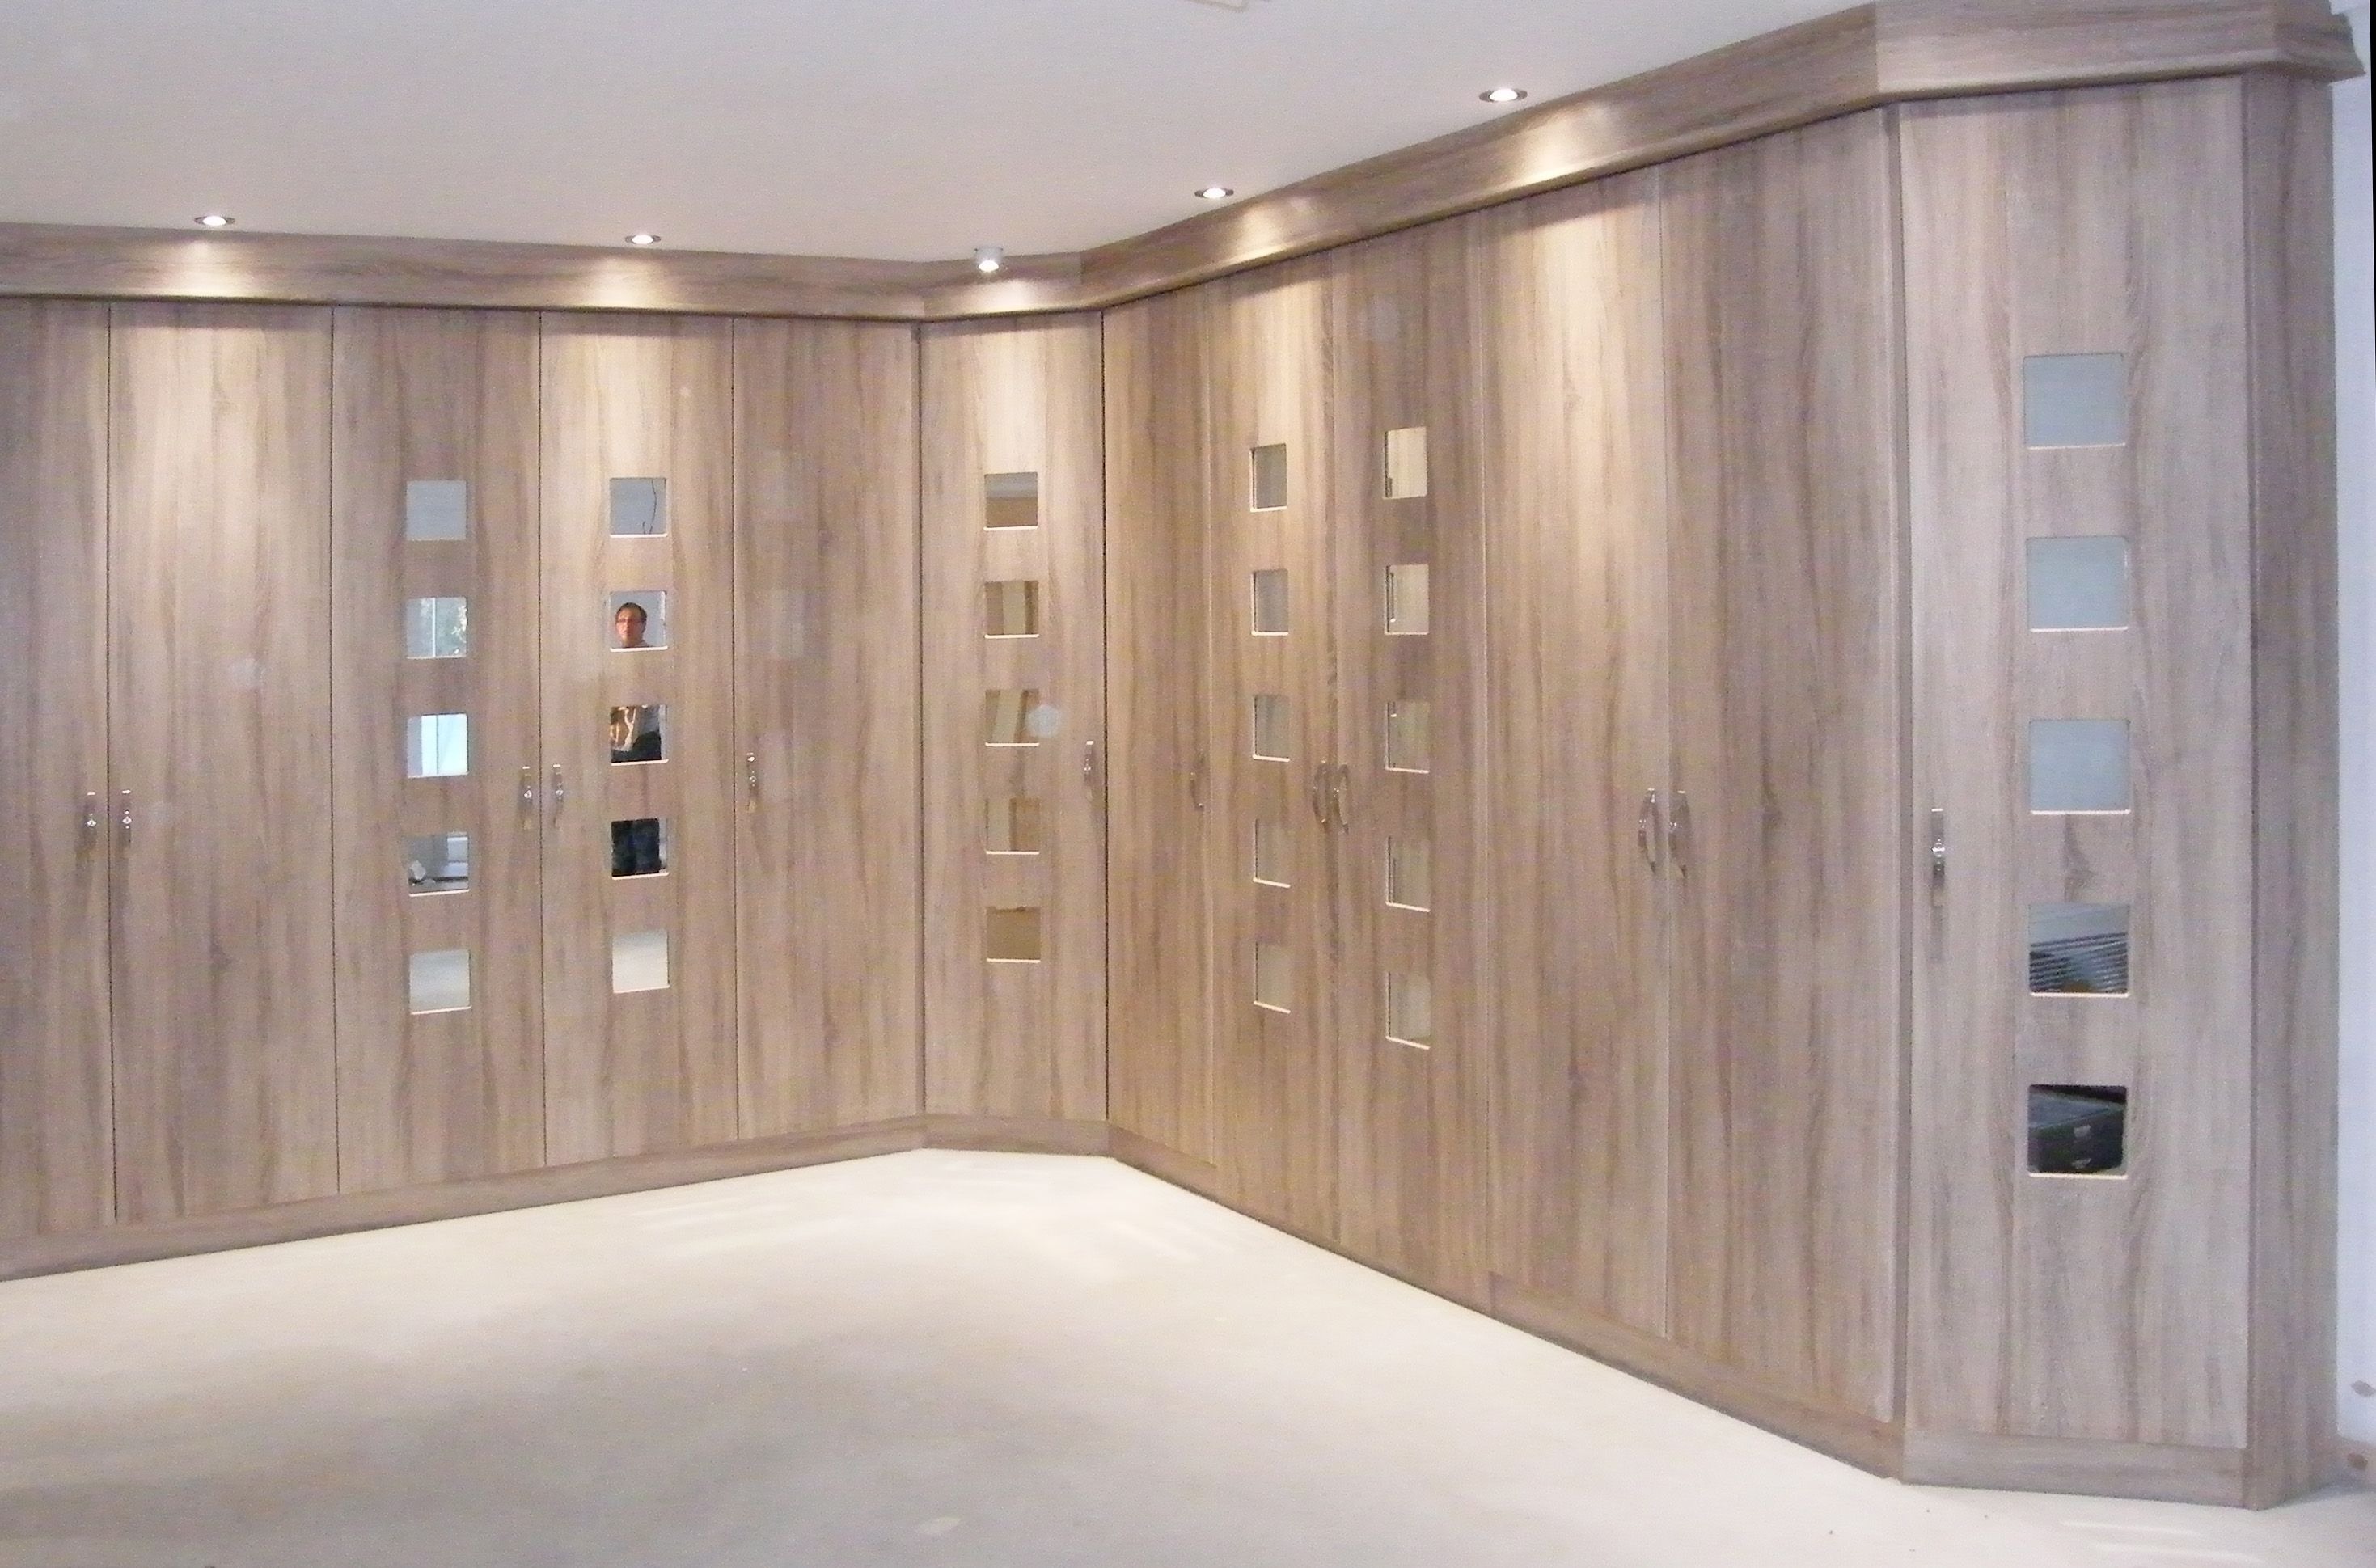 Built In Wardrobe Designs For Bedroom Stunning Contemporary Fitted Wardrobe Design With Wooden Style Doors For Design Inspiration